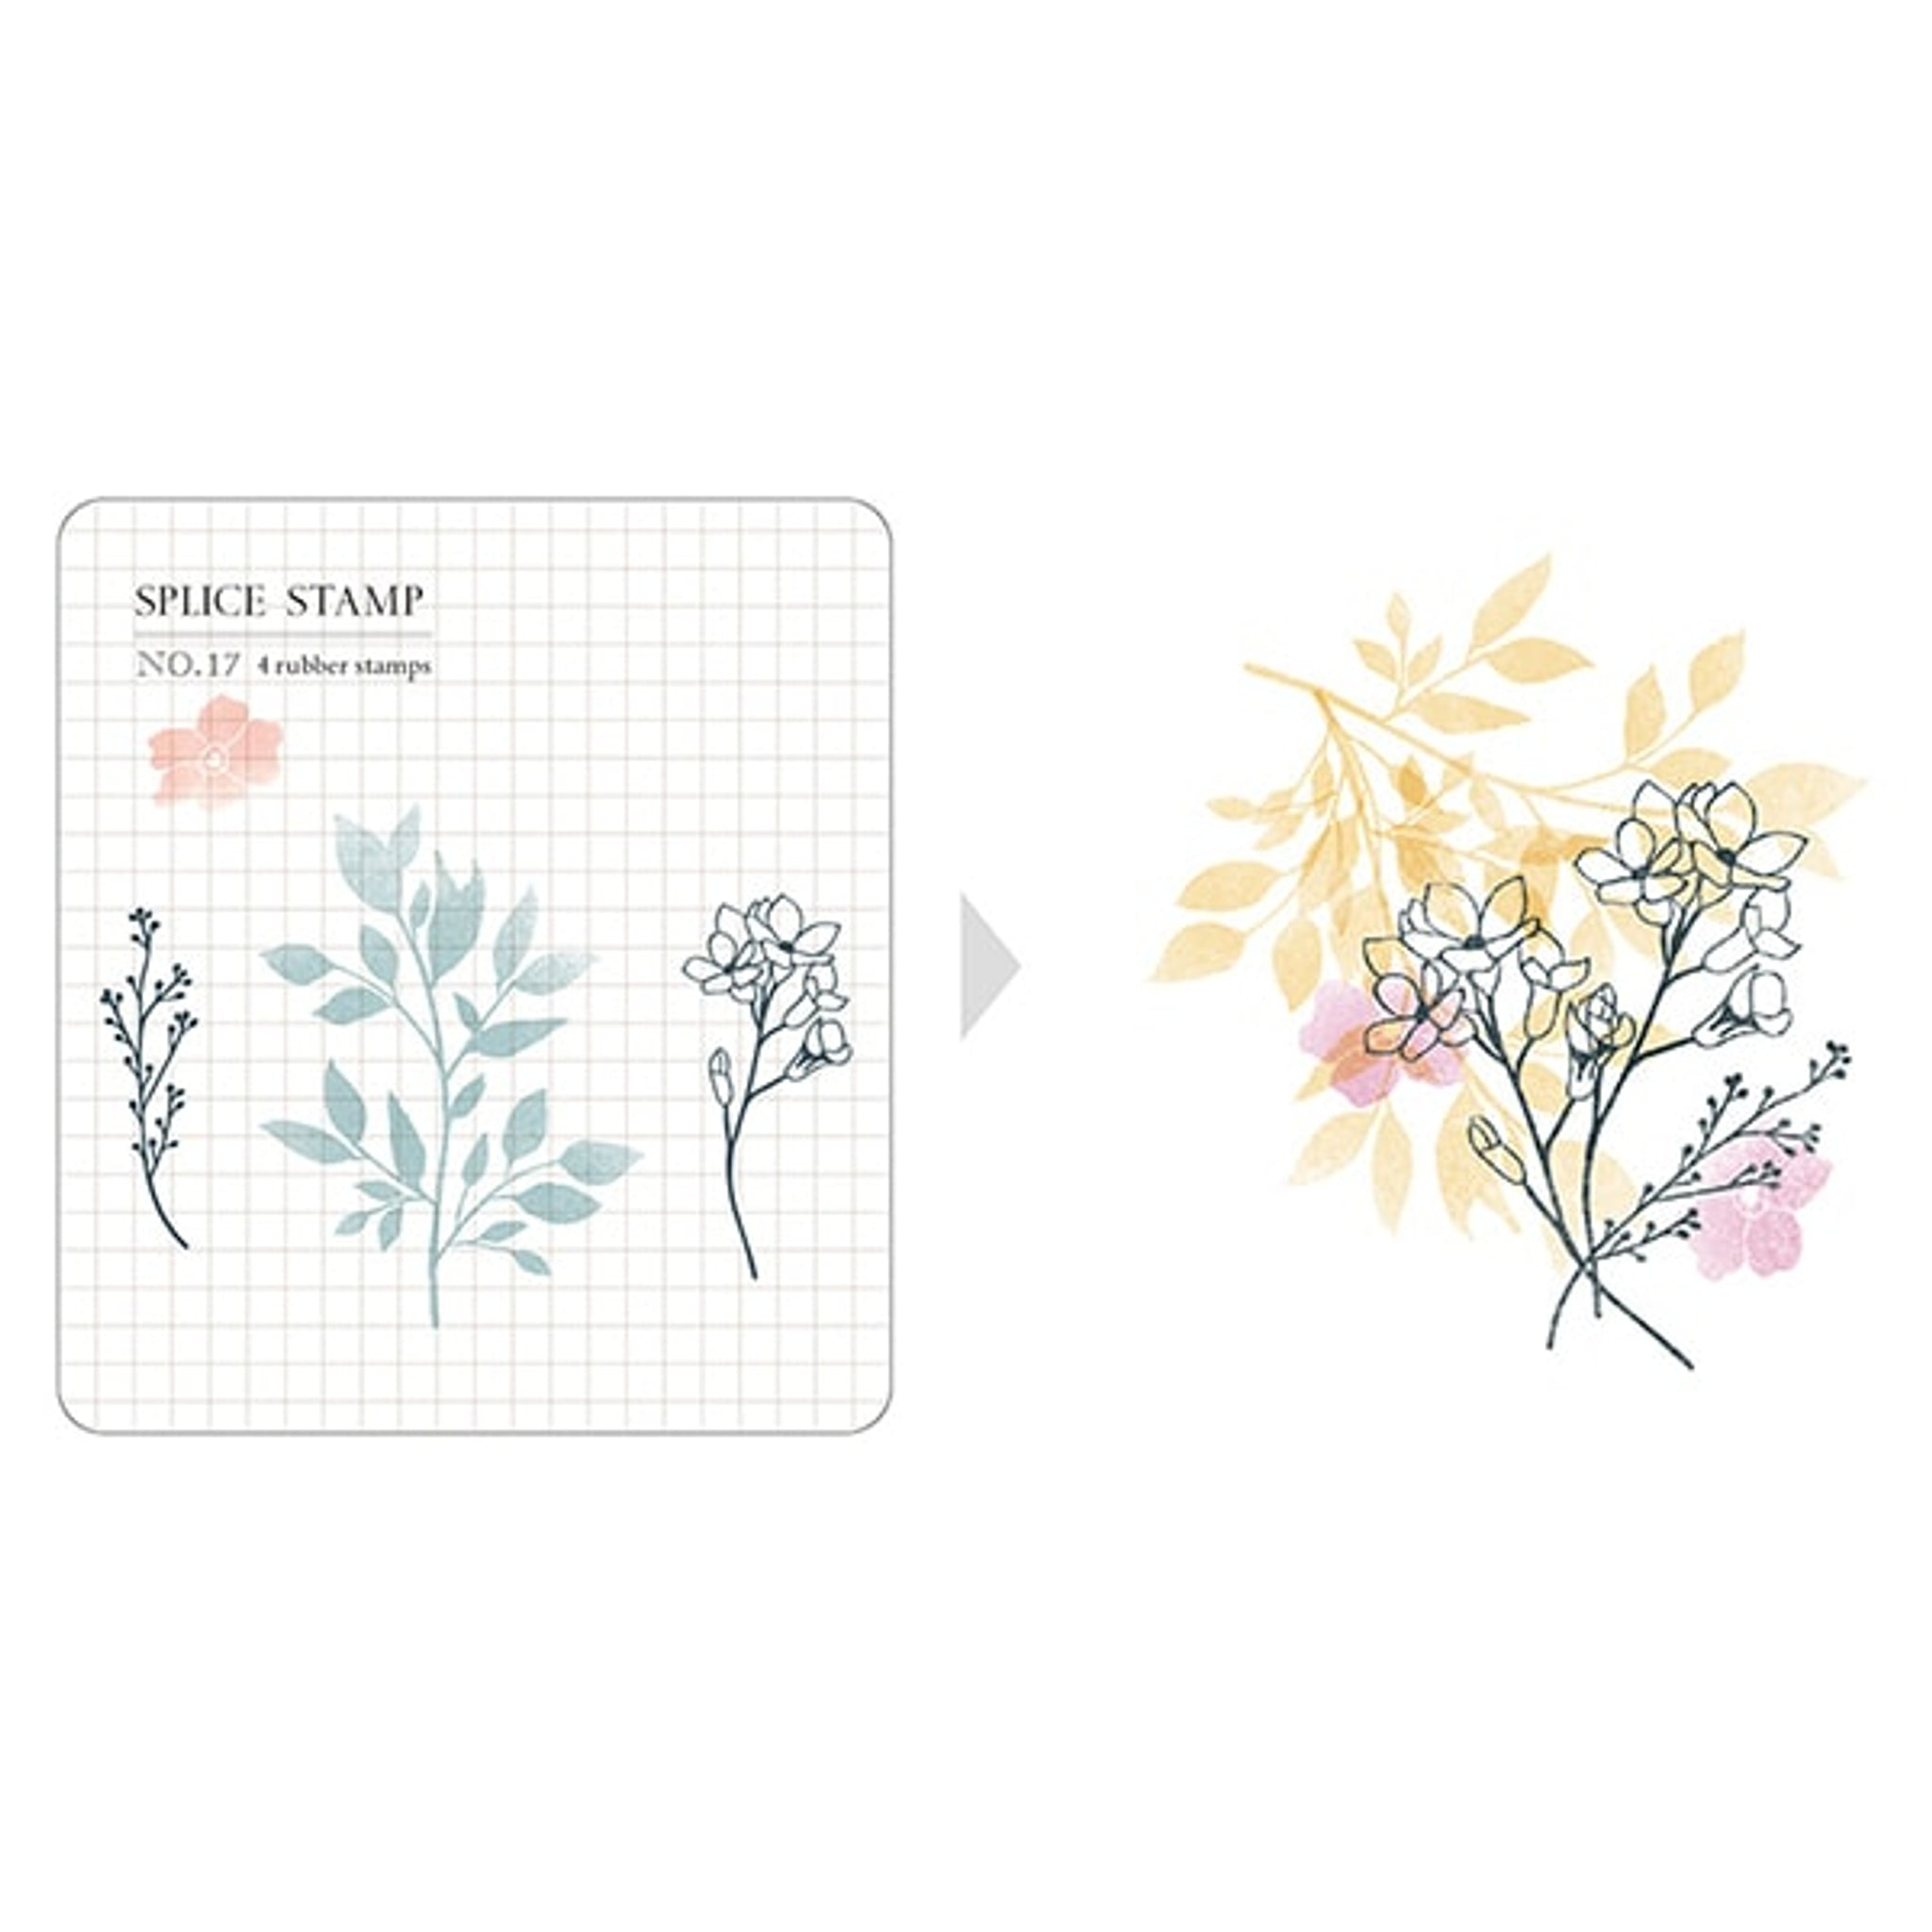 MU Craft Clear Splice Stamp Botanical 17